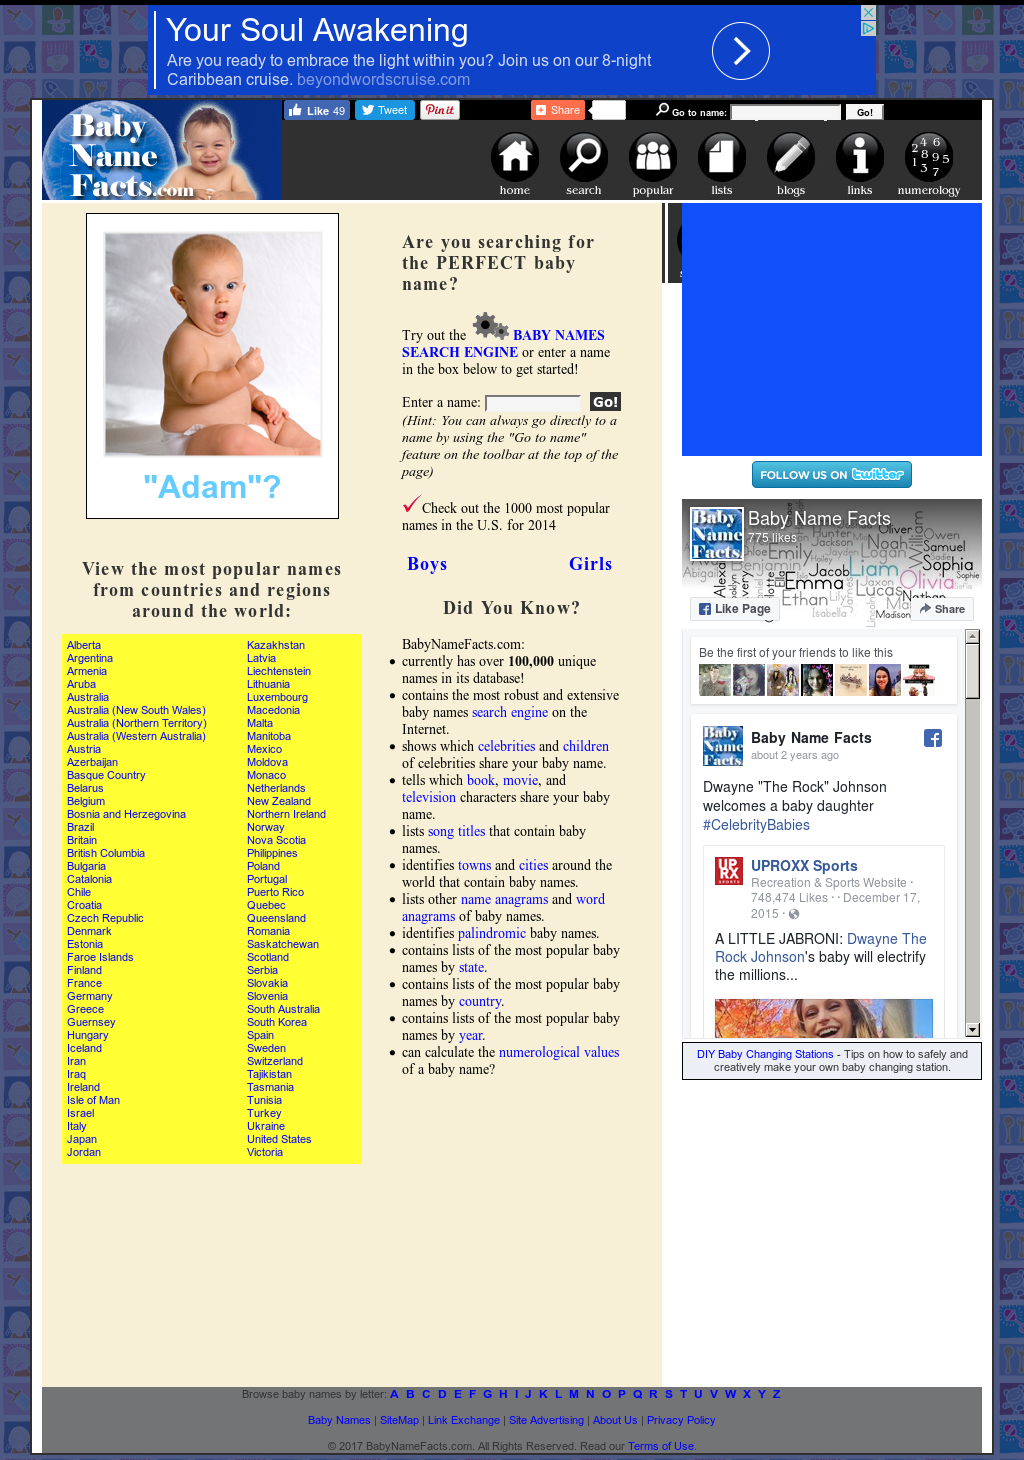 Baby Name Facts Competitors, Revenue and Employees - Owler